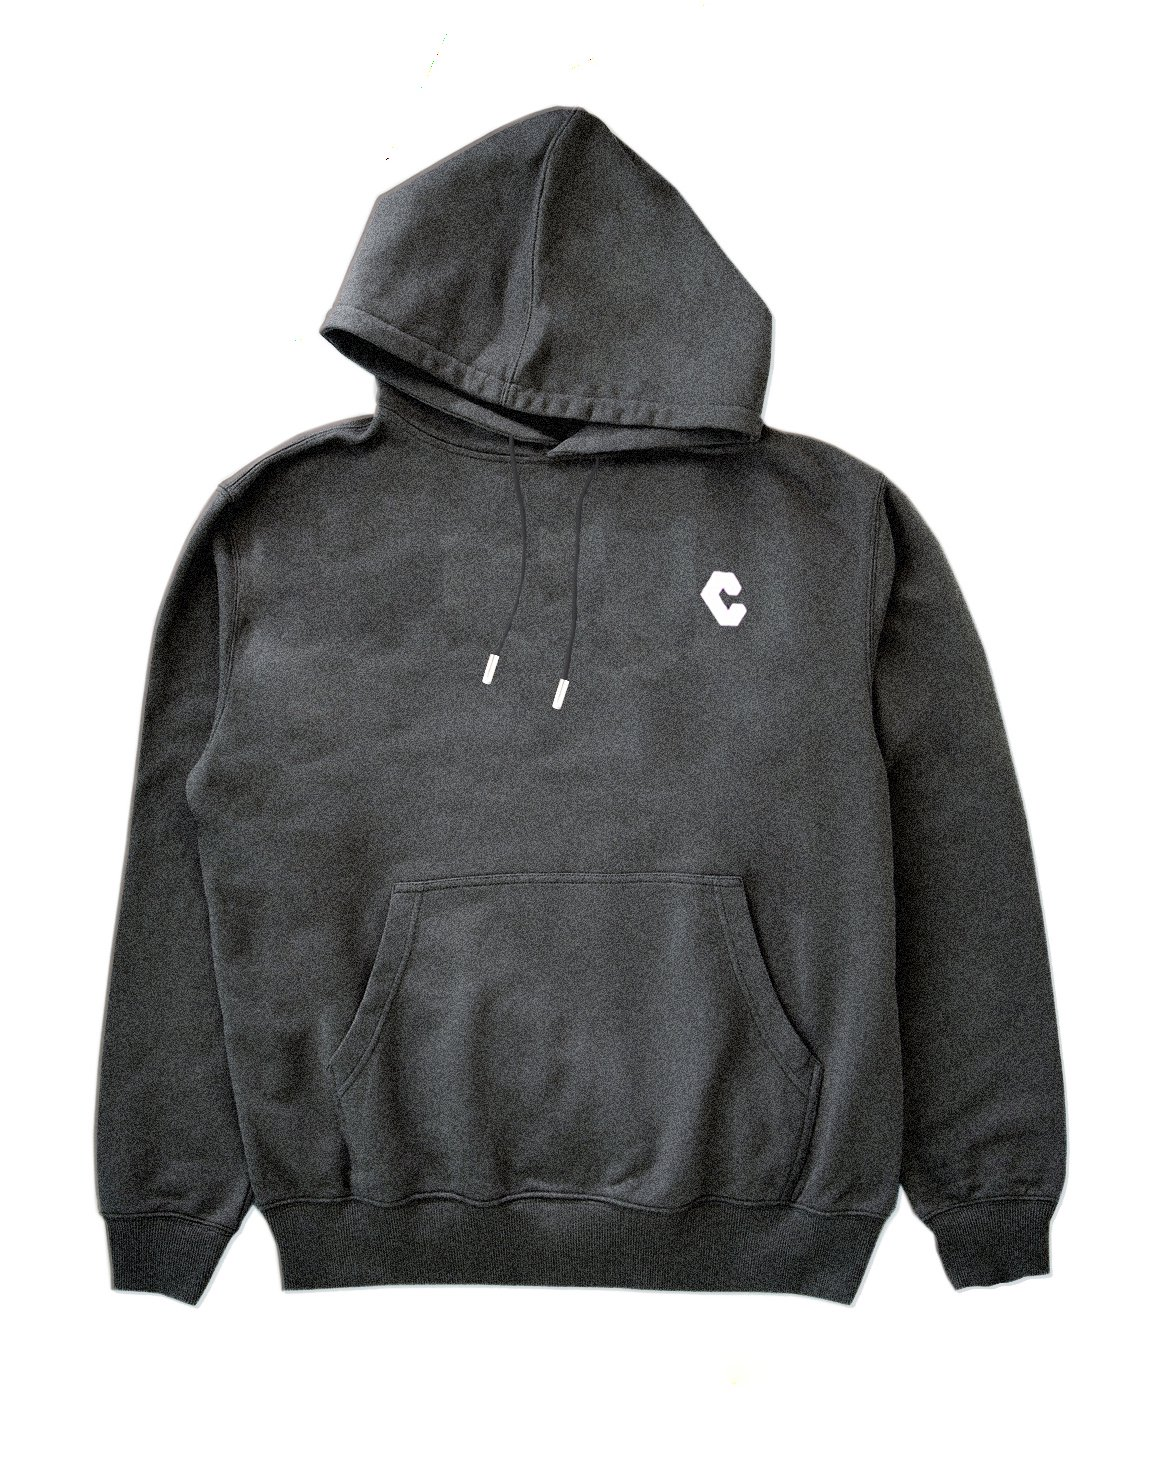 CRNS  BACK BIG LOGO HOODY【D.GRAY】